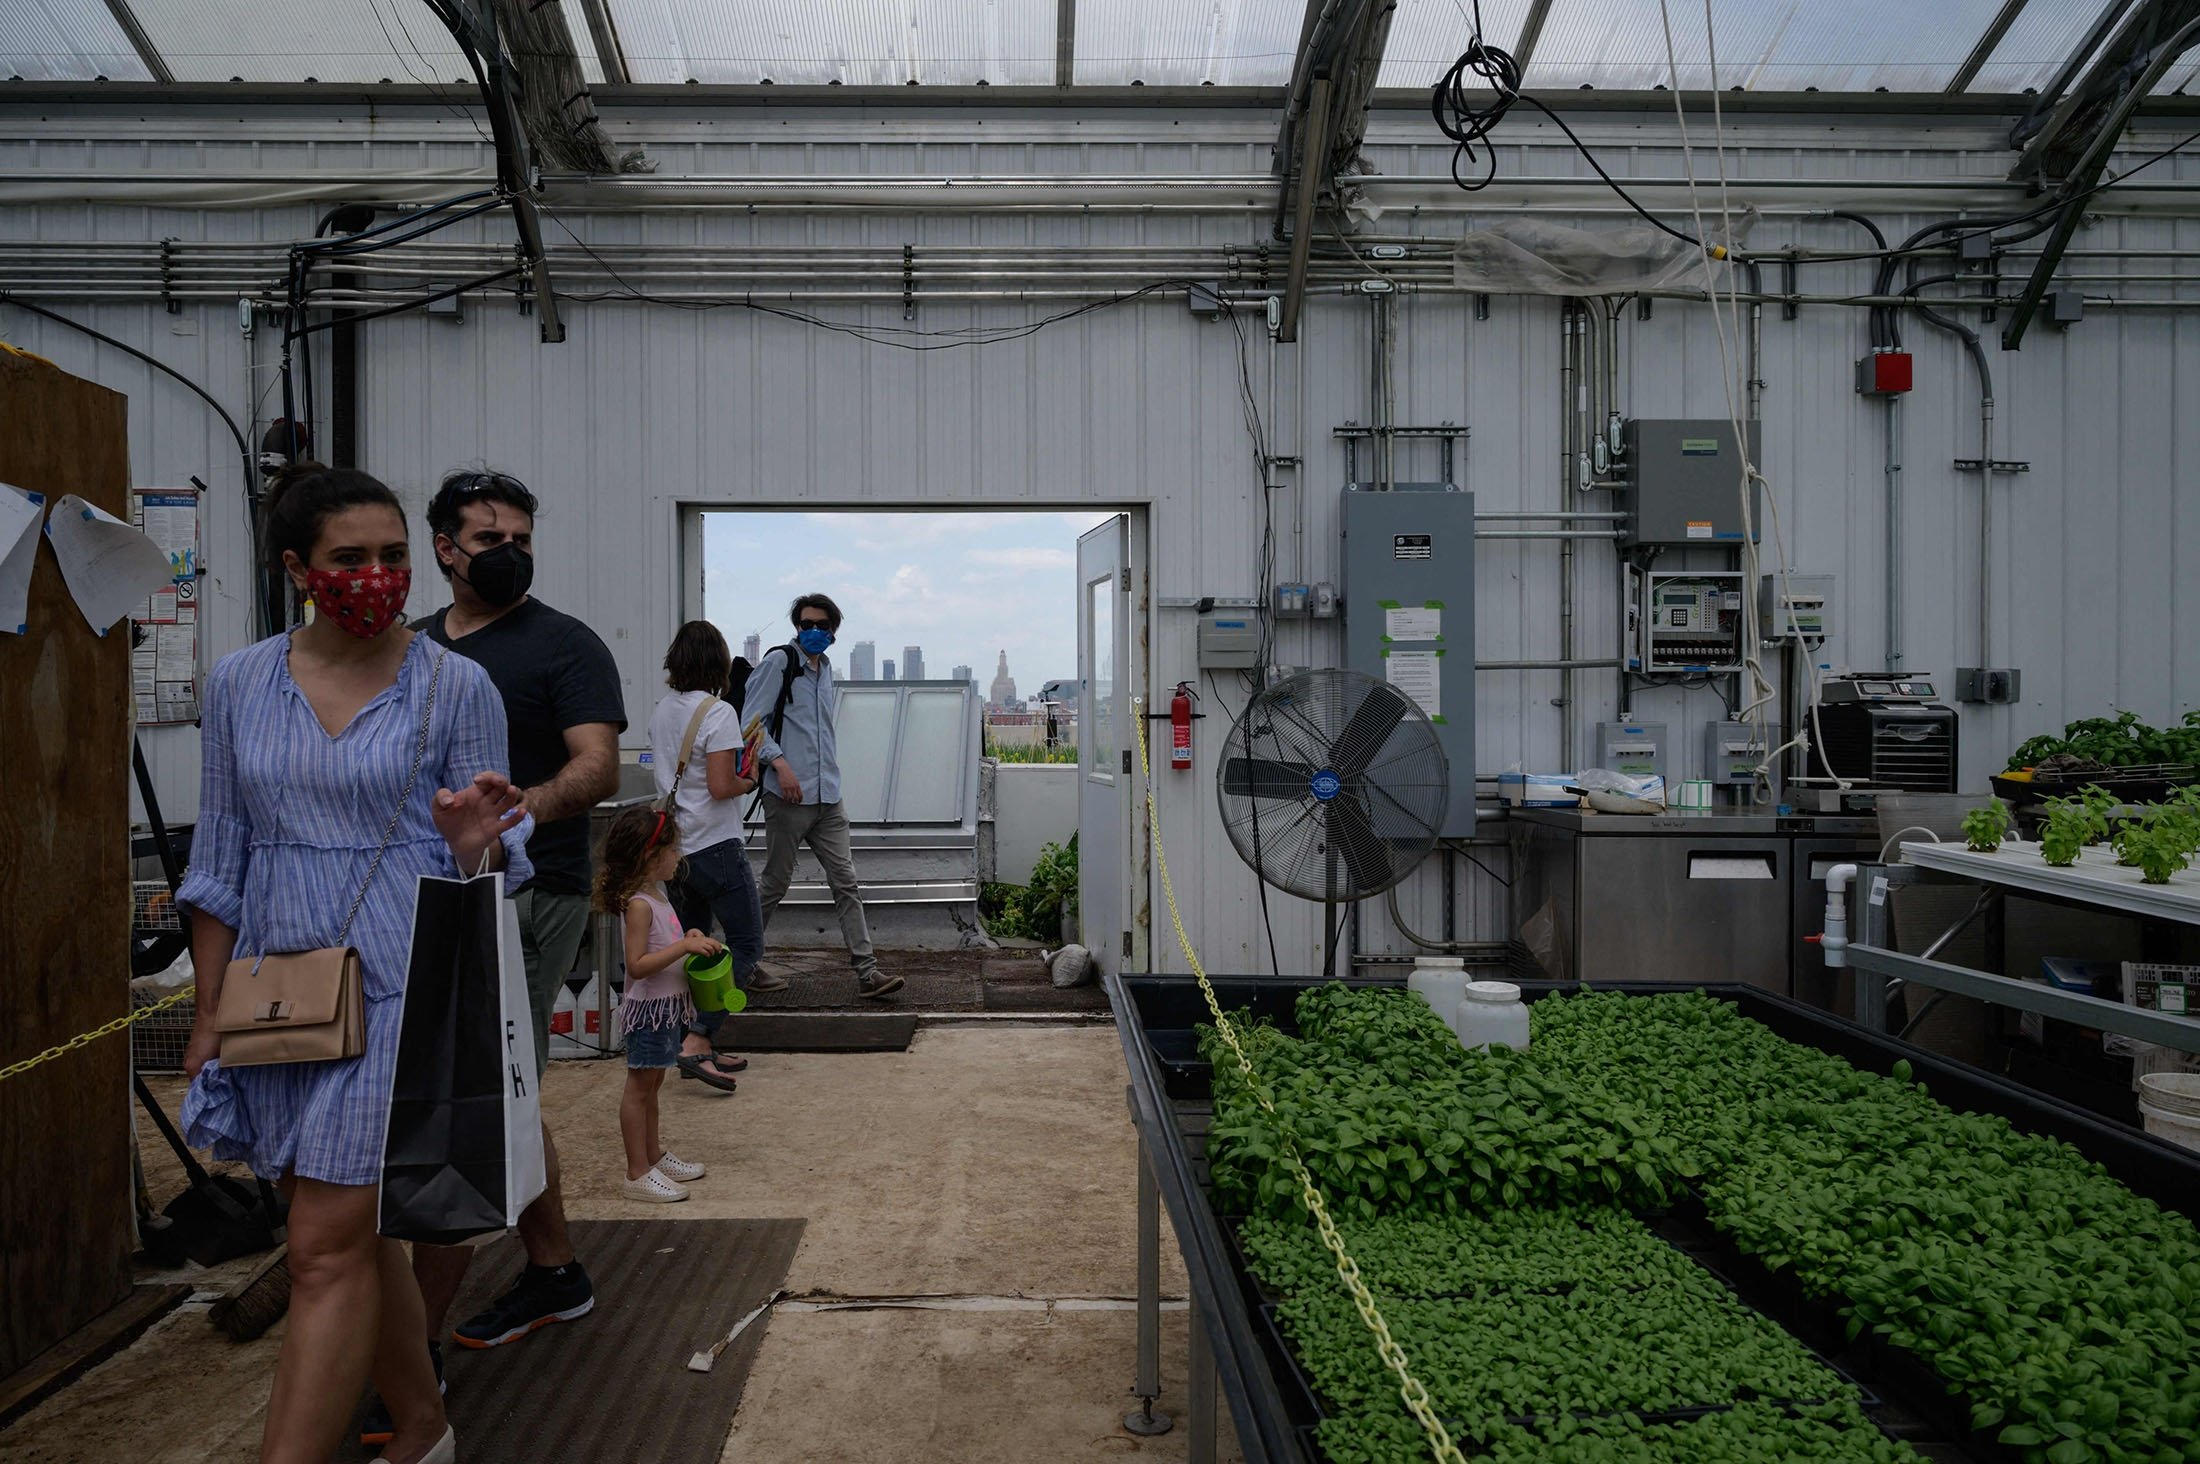 People visit the Brooklyn Grange rooftop farming company and sustainability center during an open day, in the New York City borough of Brooklyn, U.S., May 23, 2021. (AFP Photo)